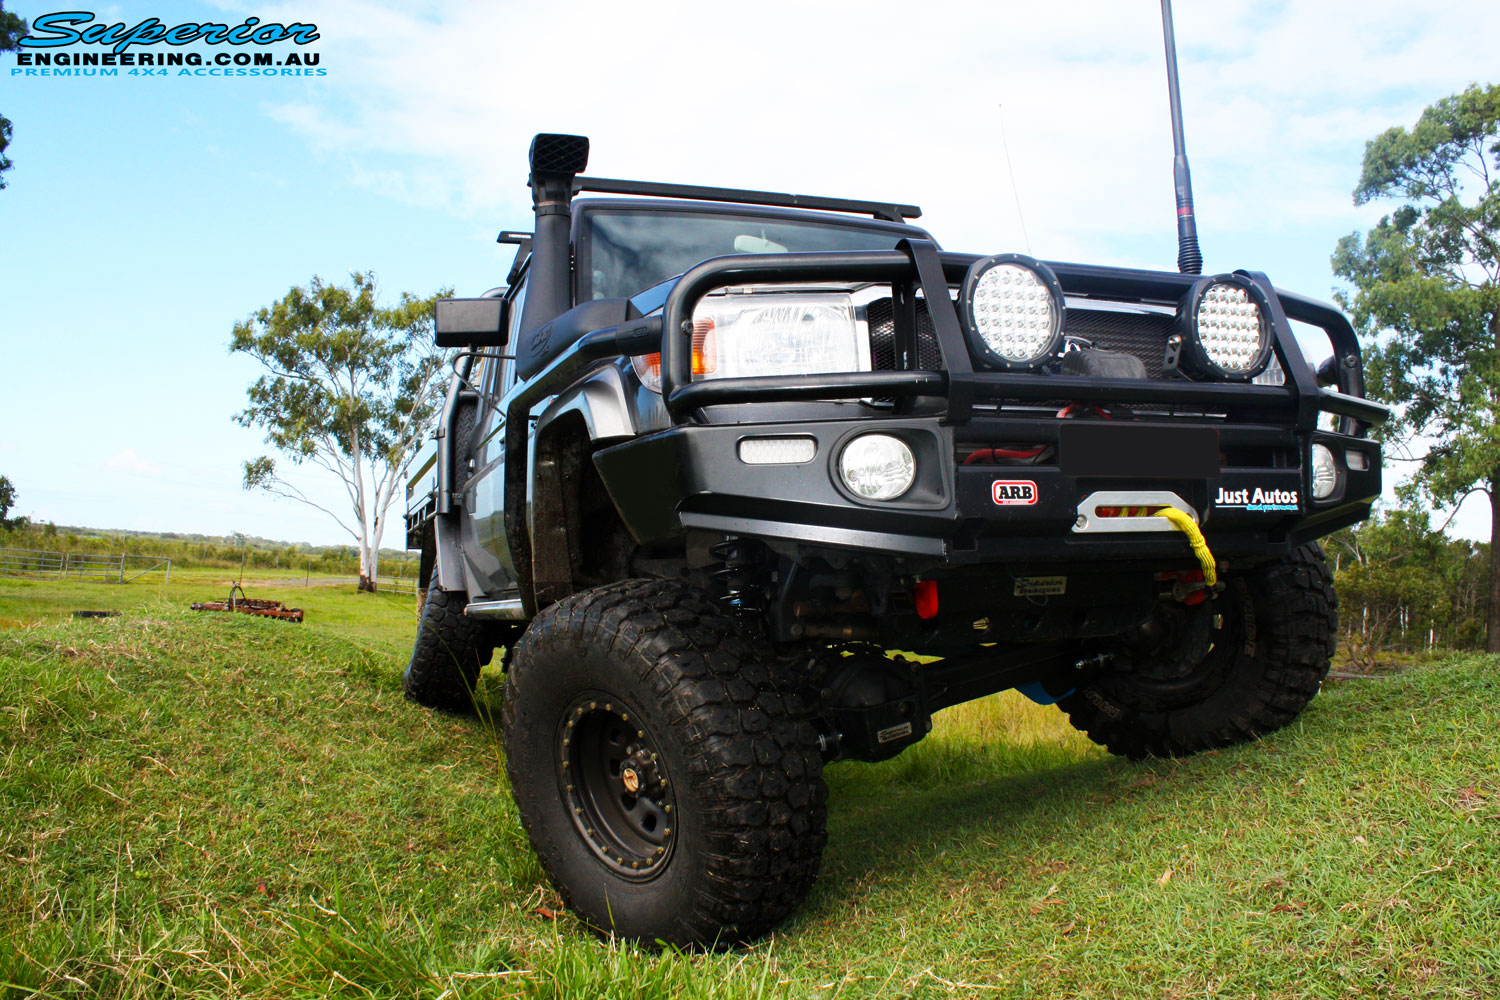 """Front on view of a Grey Toyota 79 Series Landcruiser Dual Cab after fitment of a Superior 4"""" Inch Rear Coil Conversion Kit with Hyperflex Radius Arms."""